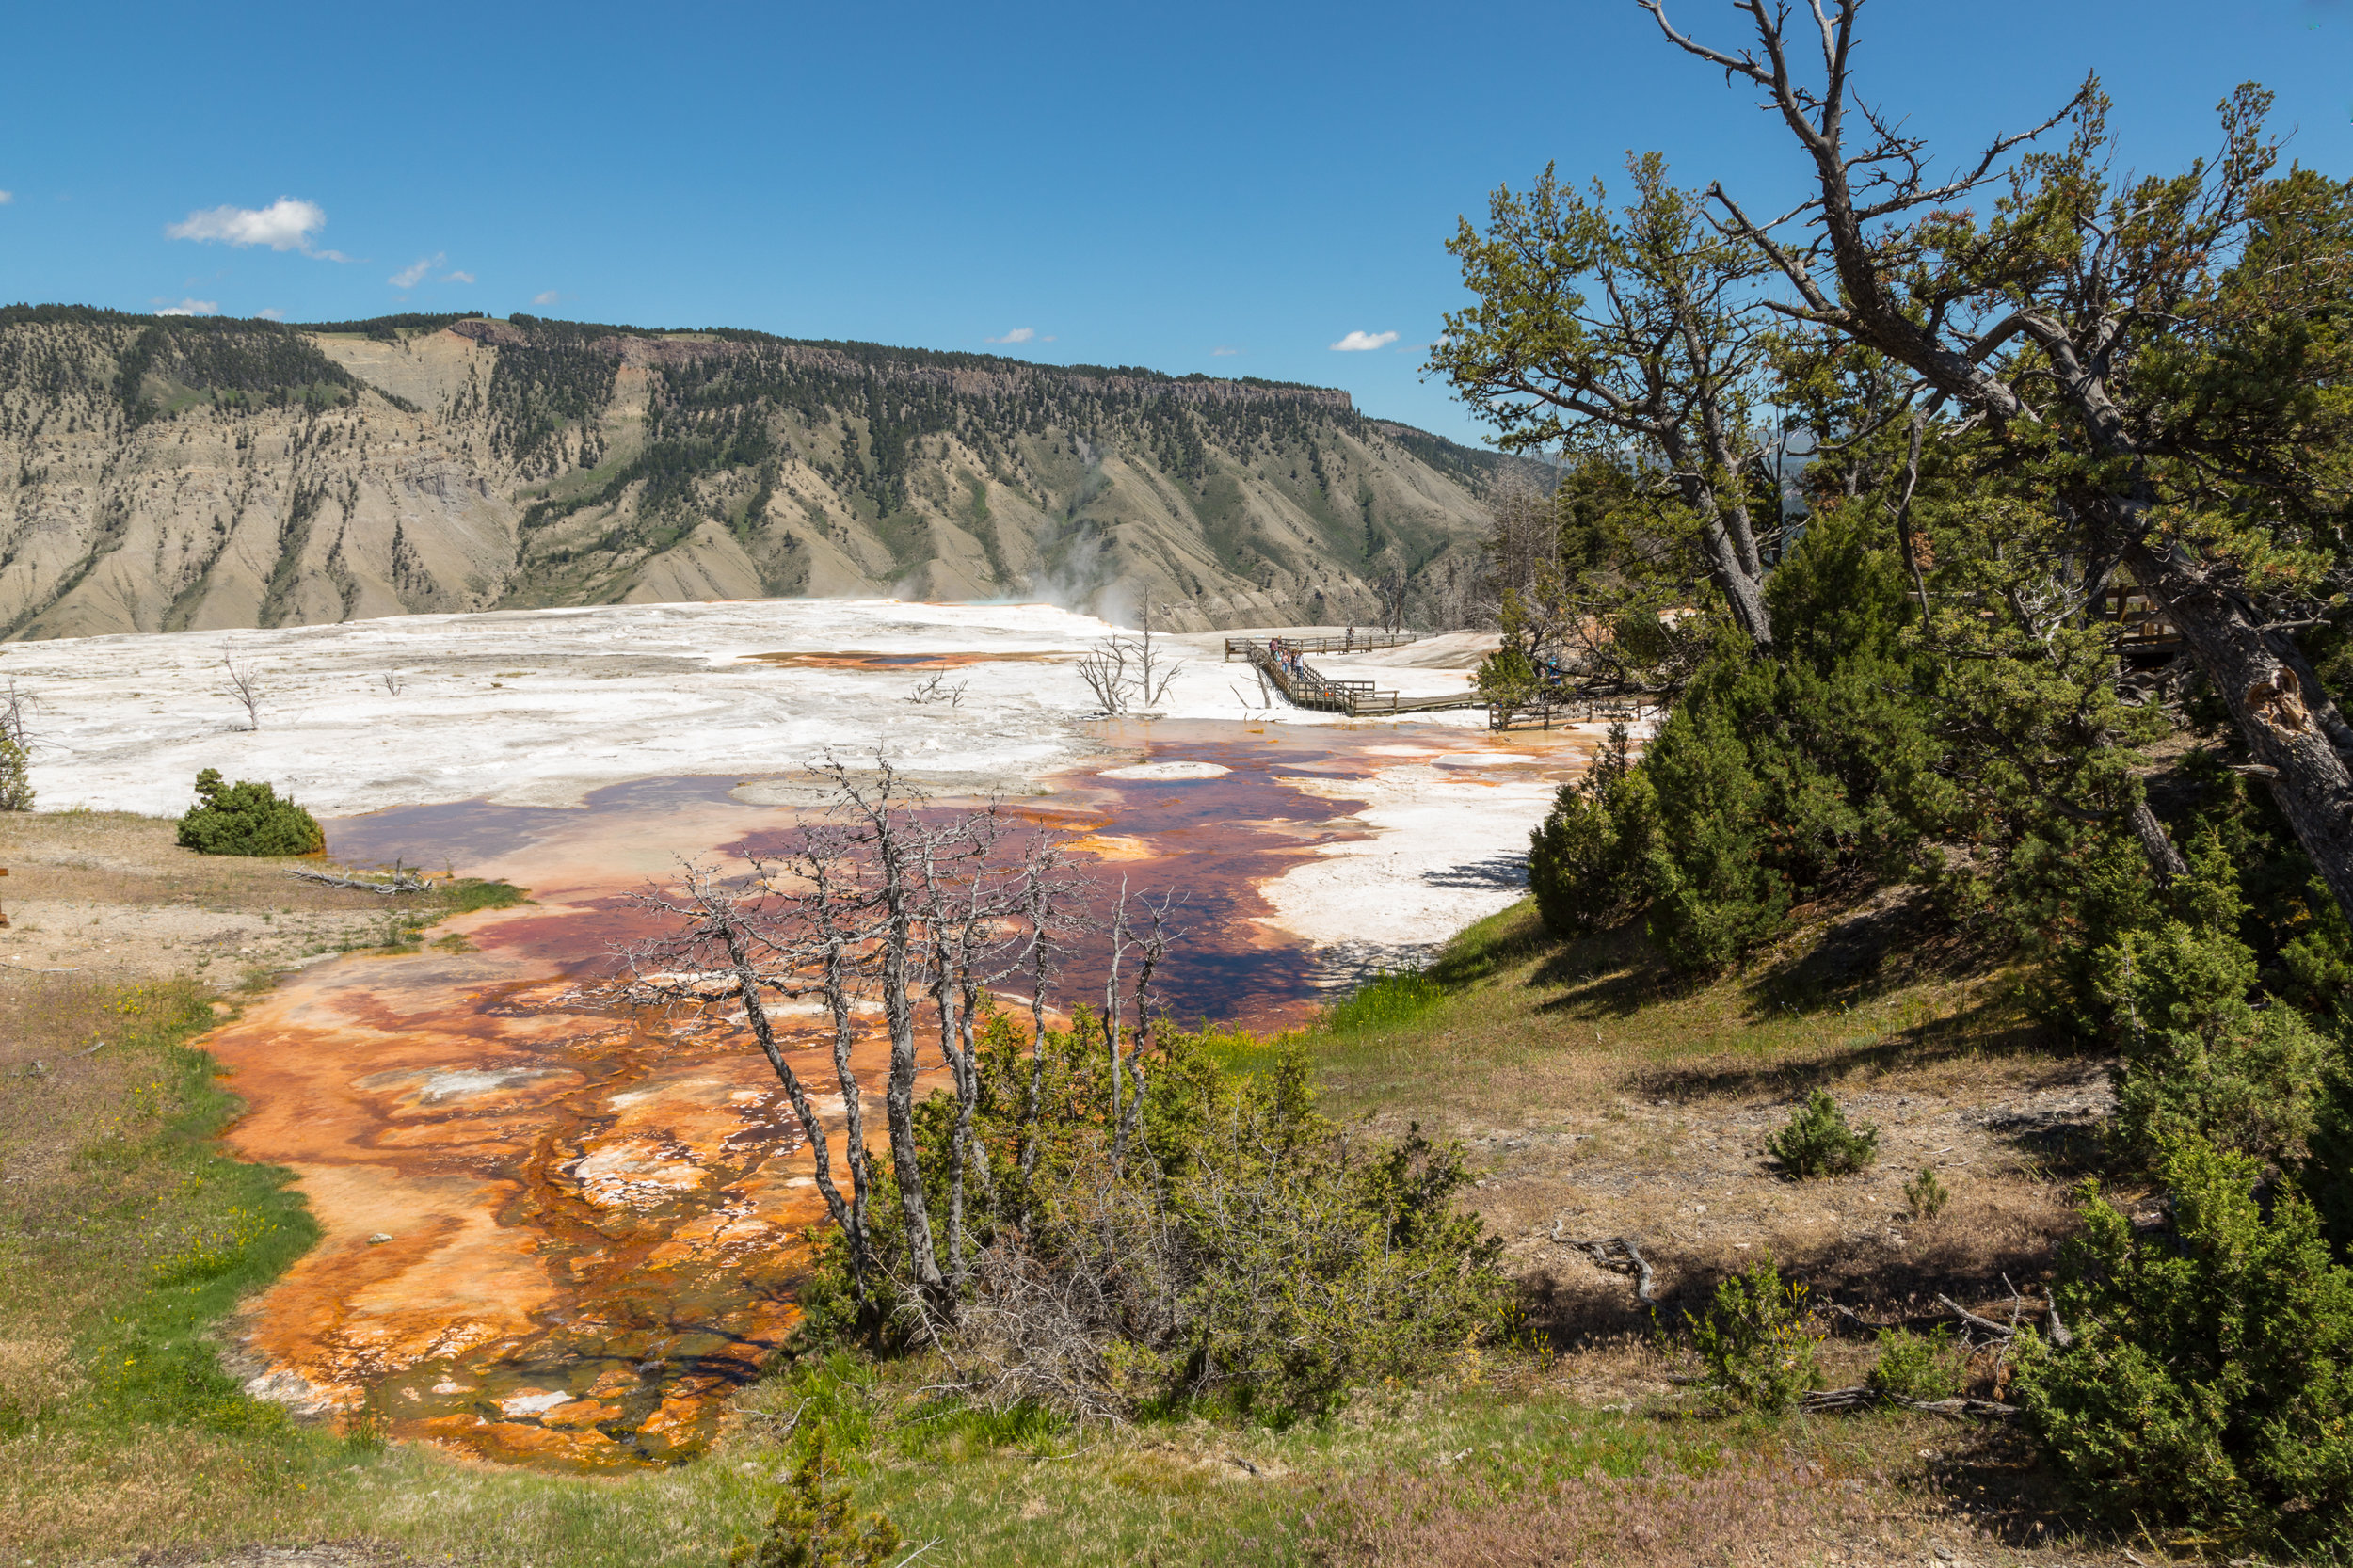 Mammoth Hot Springs, Yellowstone National Park, Image # 7326